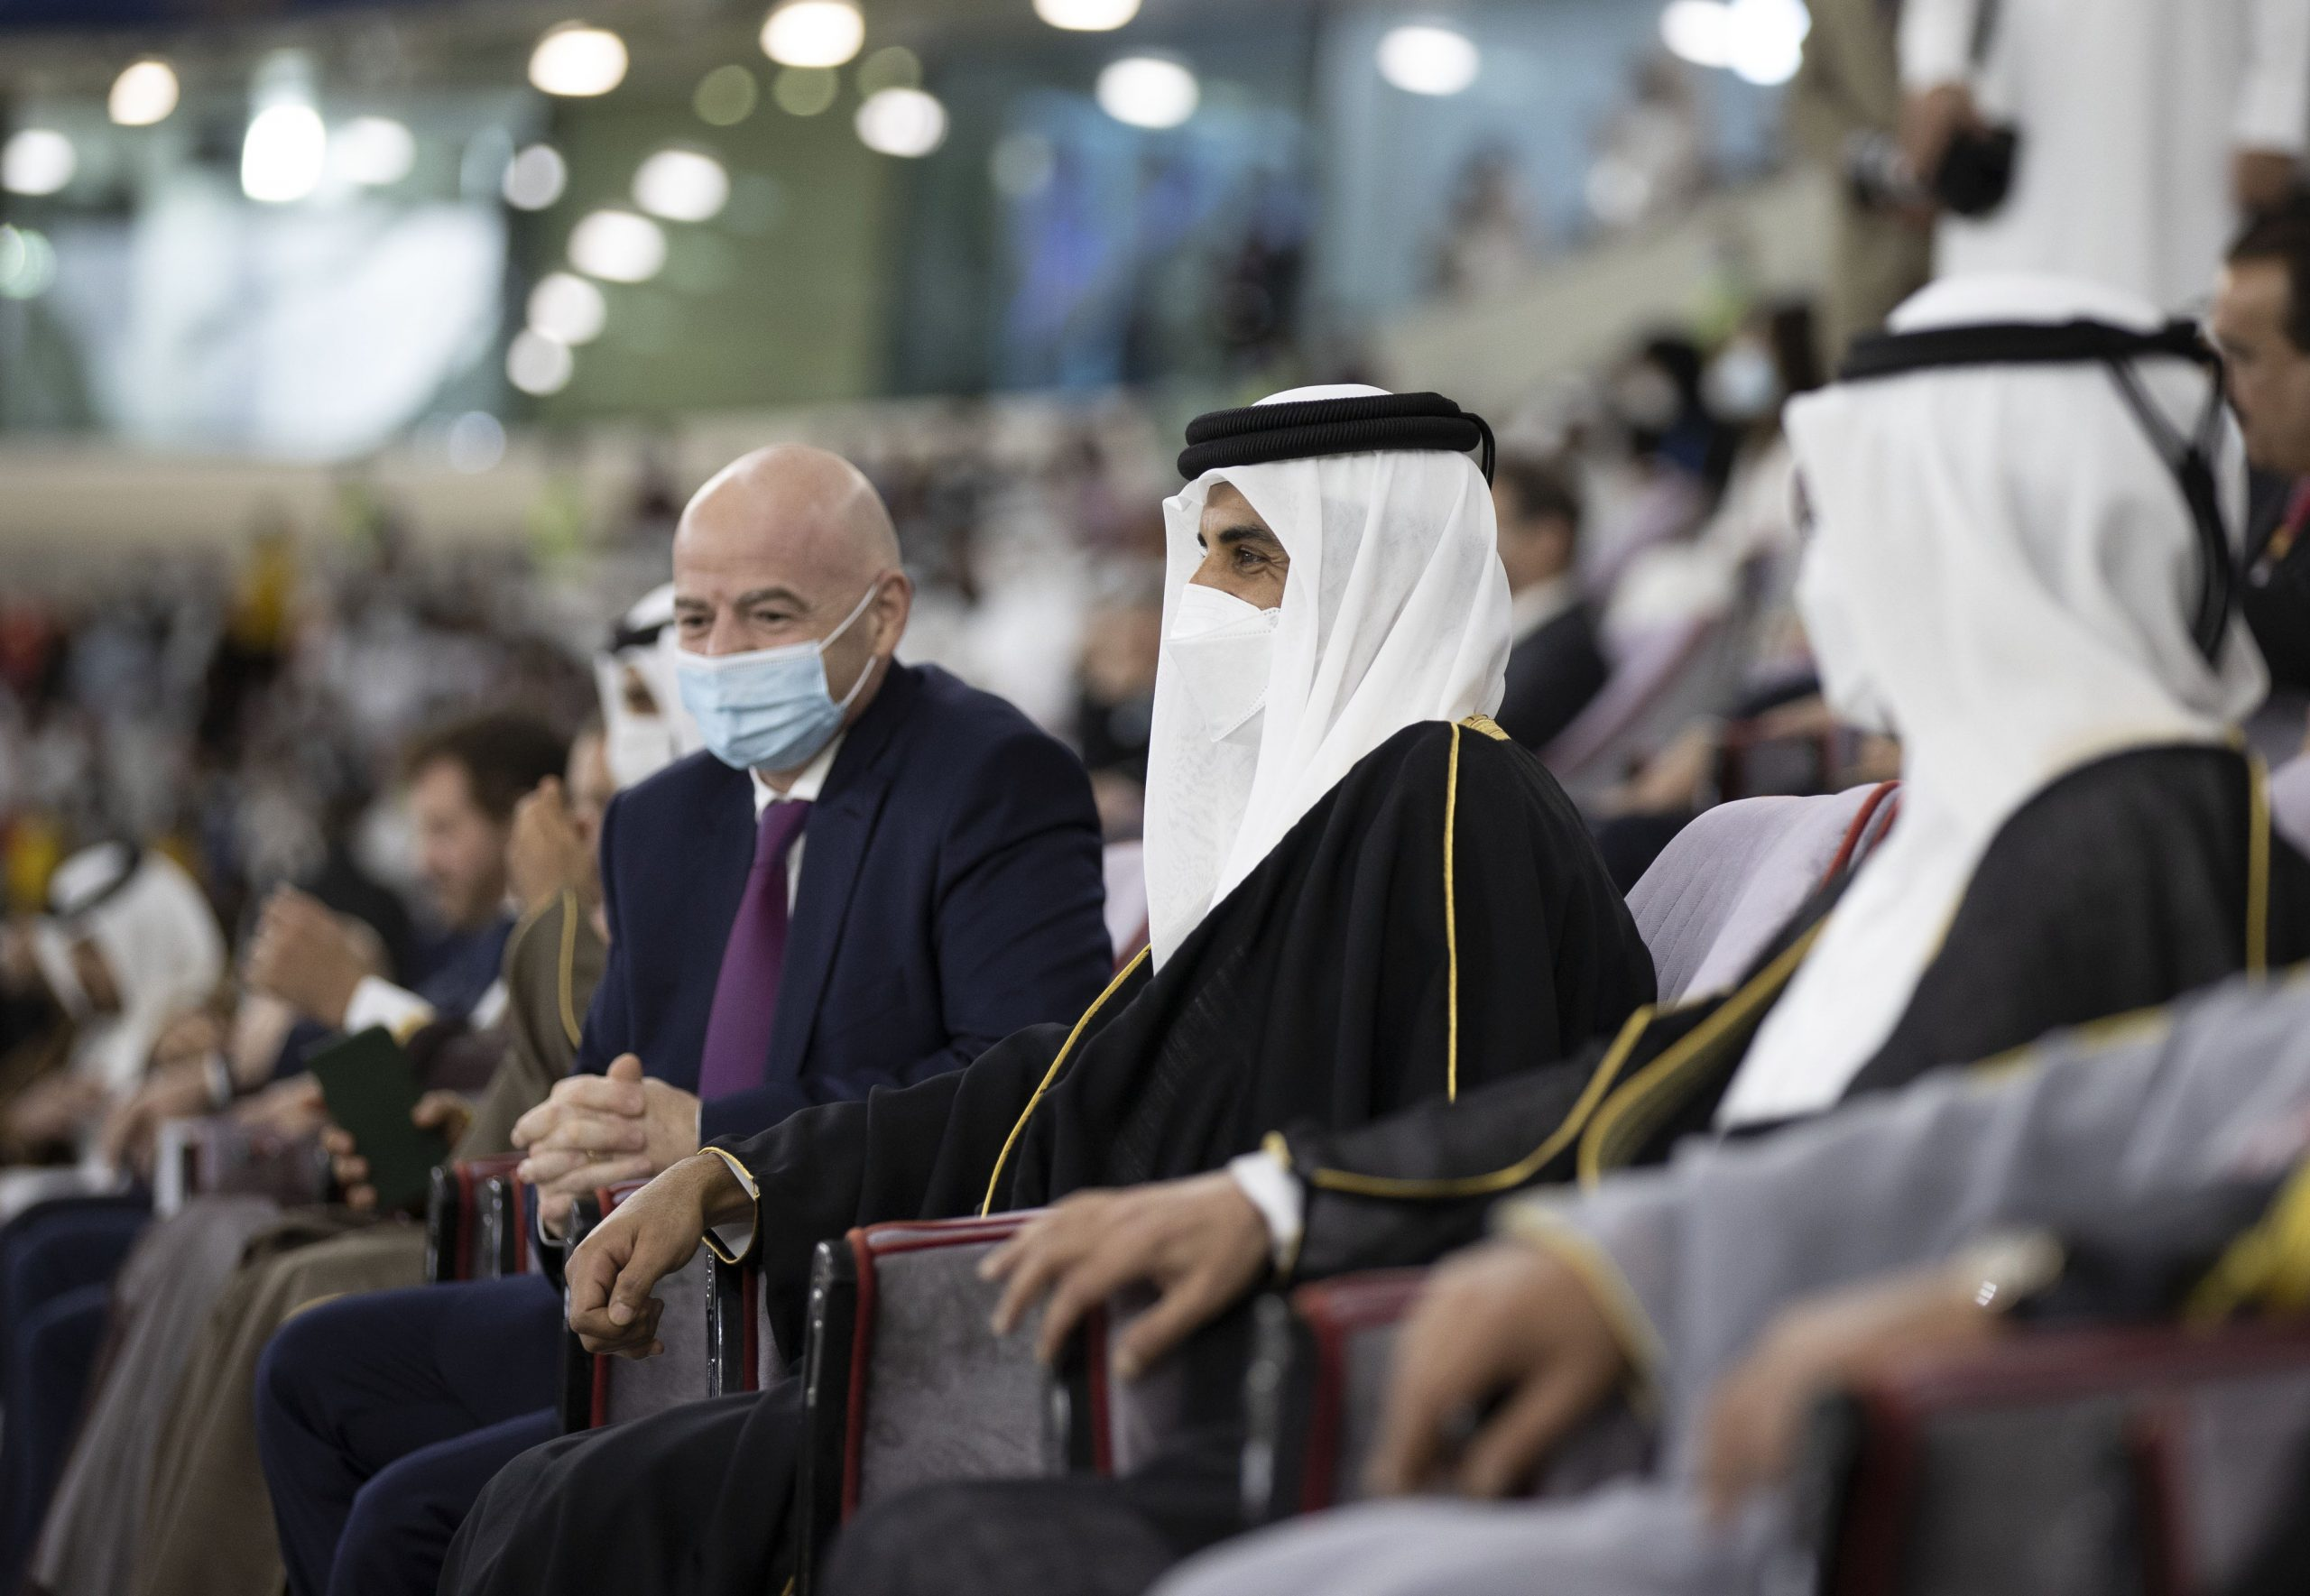 HH the Amir Attends Final of the Amir Cup